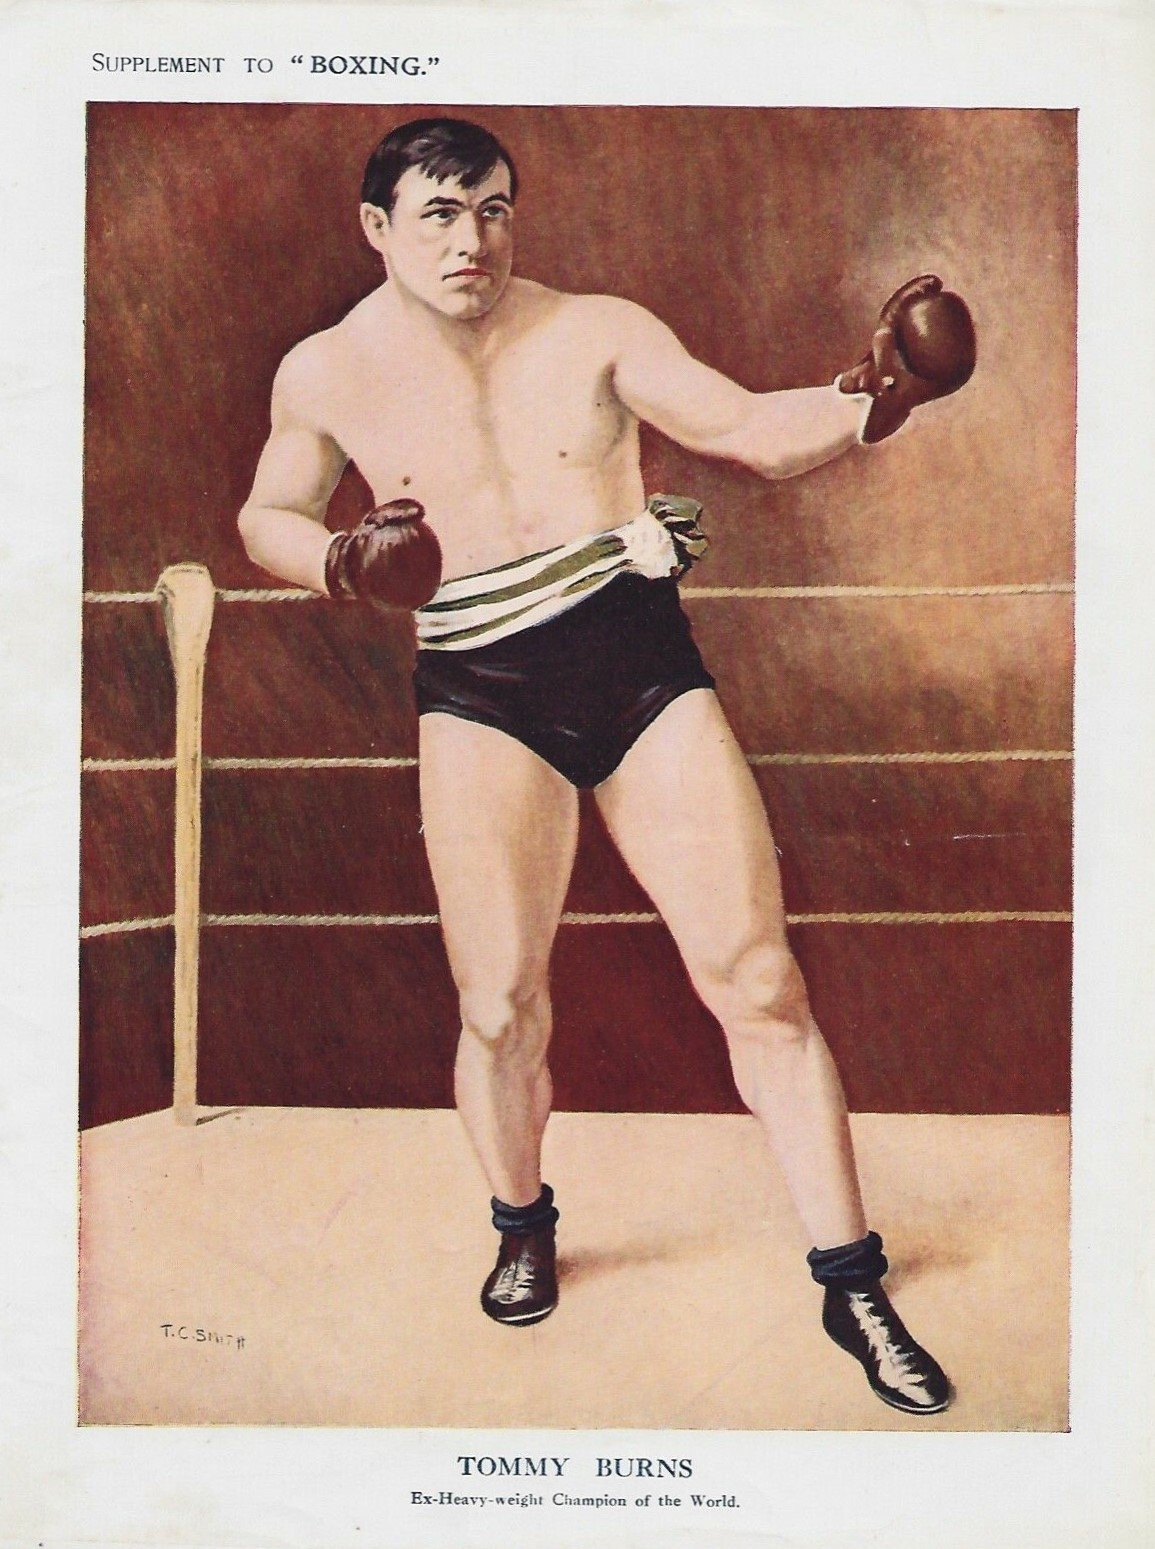 1910 Boxing Supplement Tommy Burns